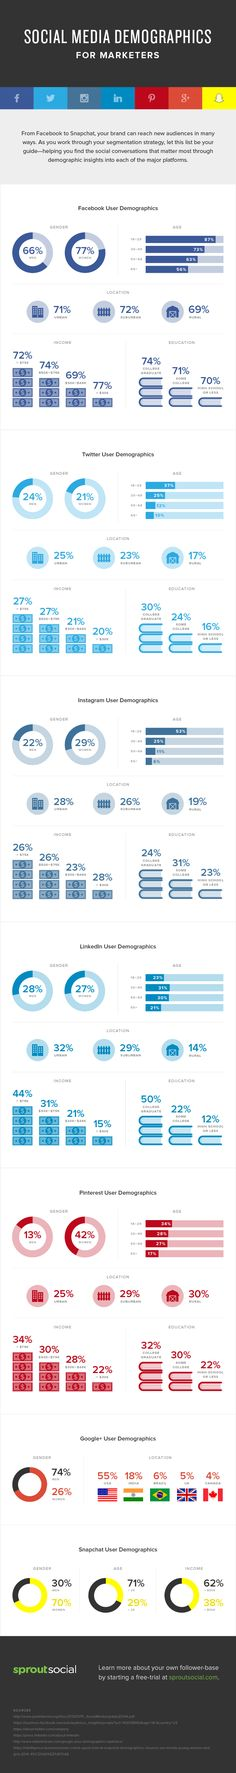 Facebook, Twitter, GooglePlus, Instagram, LinkedIn, Pinterest and Snapchat - Social Media Demographics for Marketers